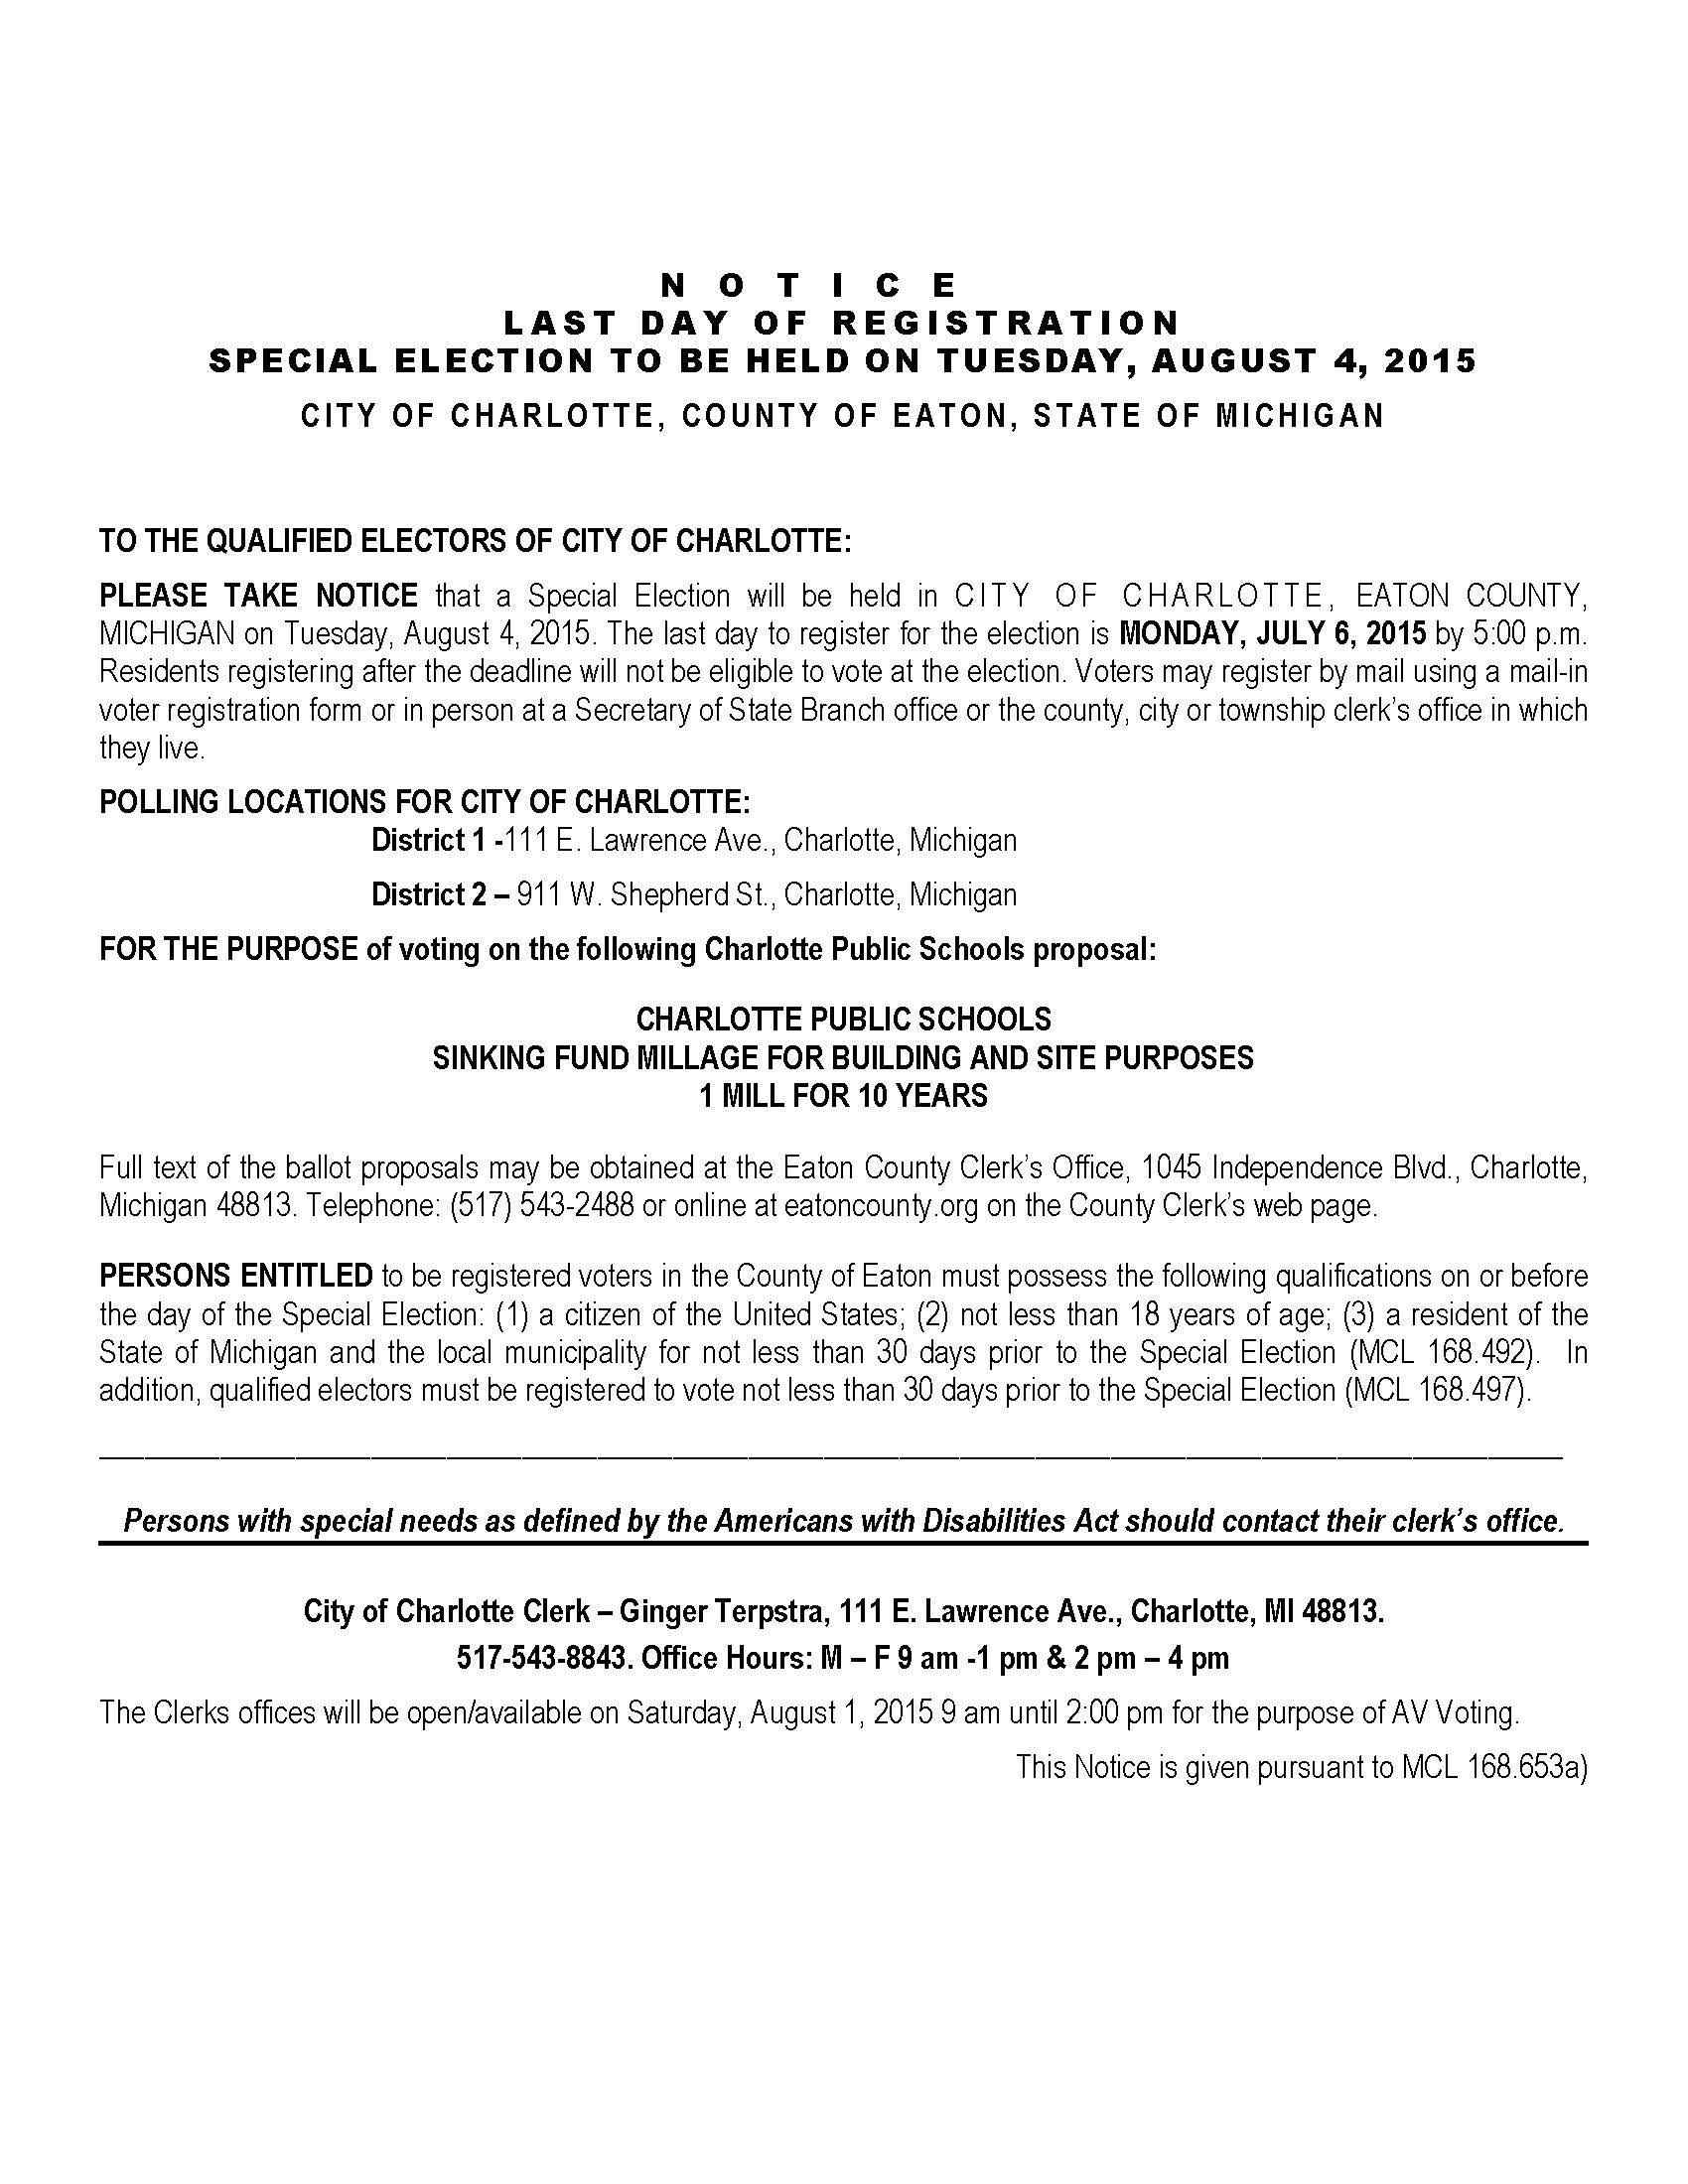 Notice of Election